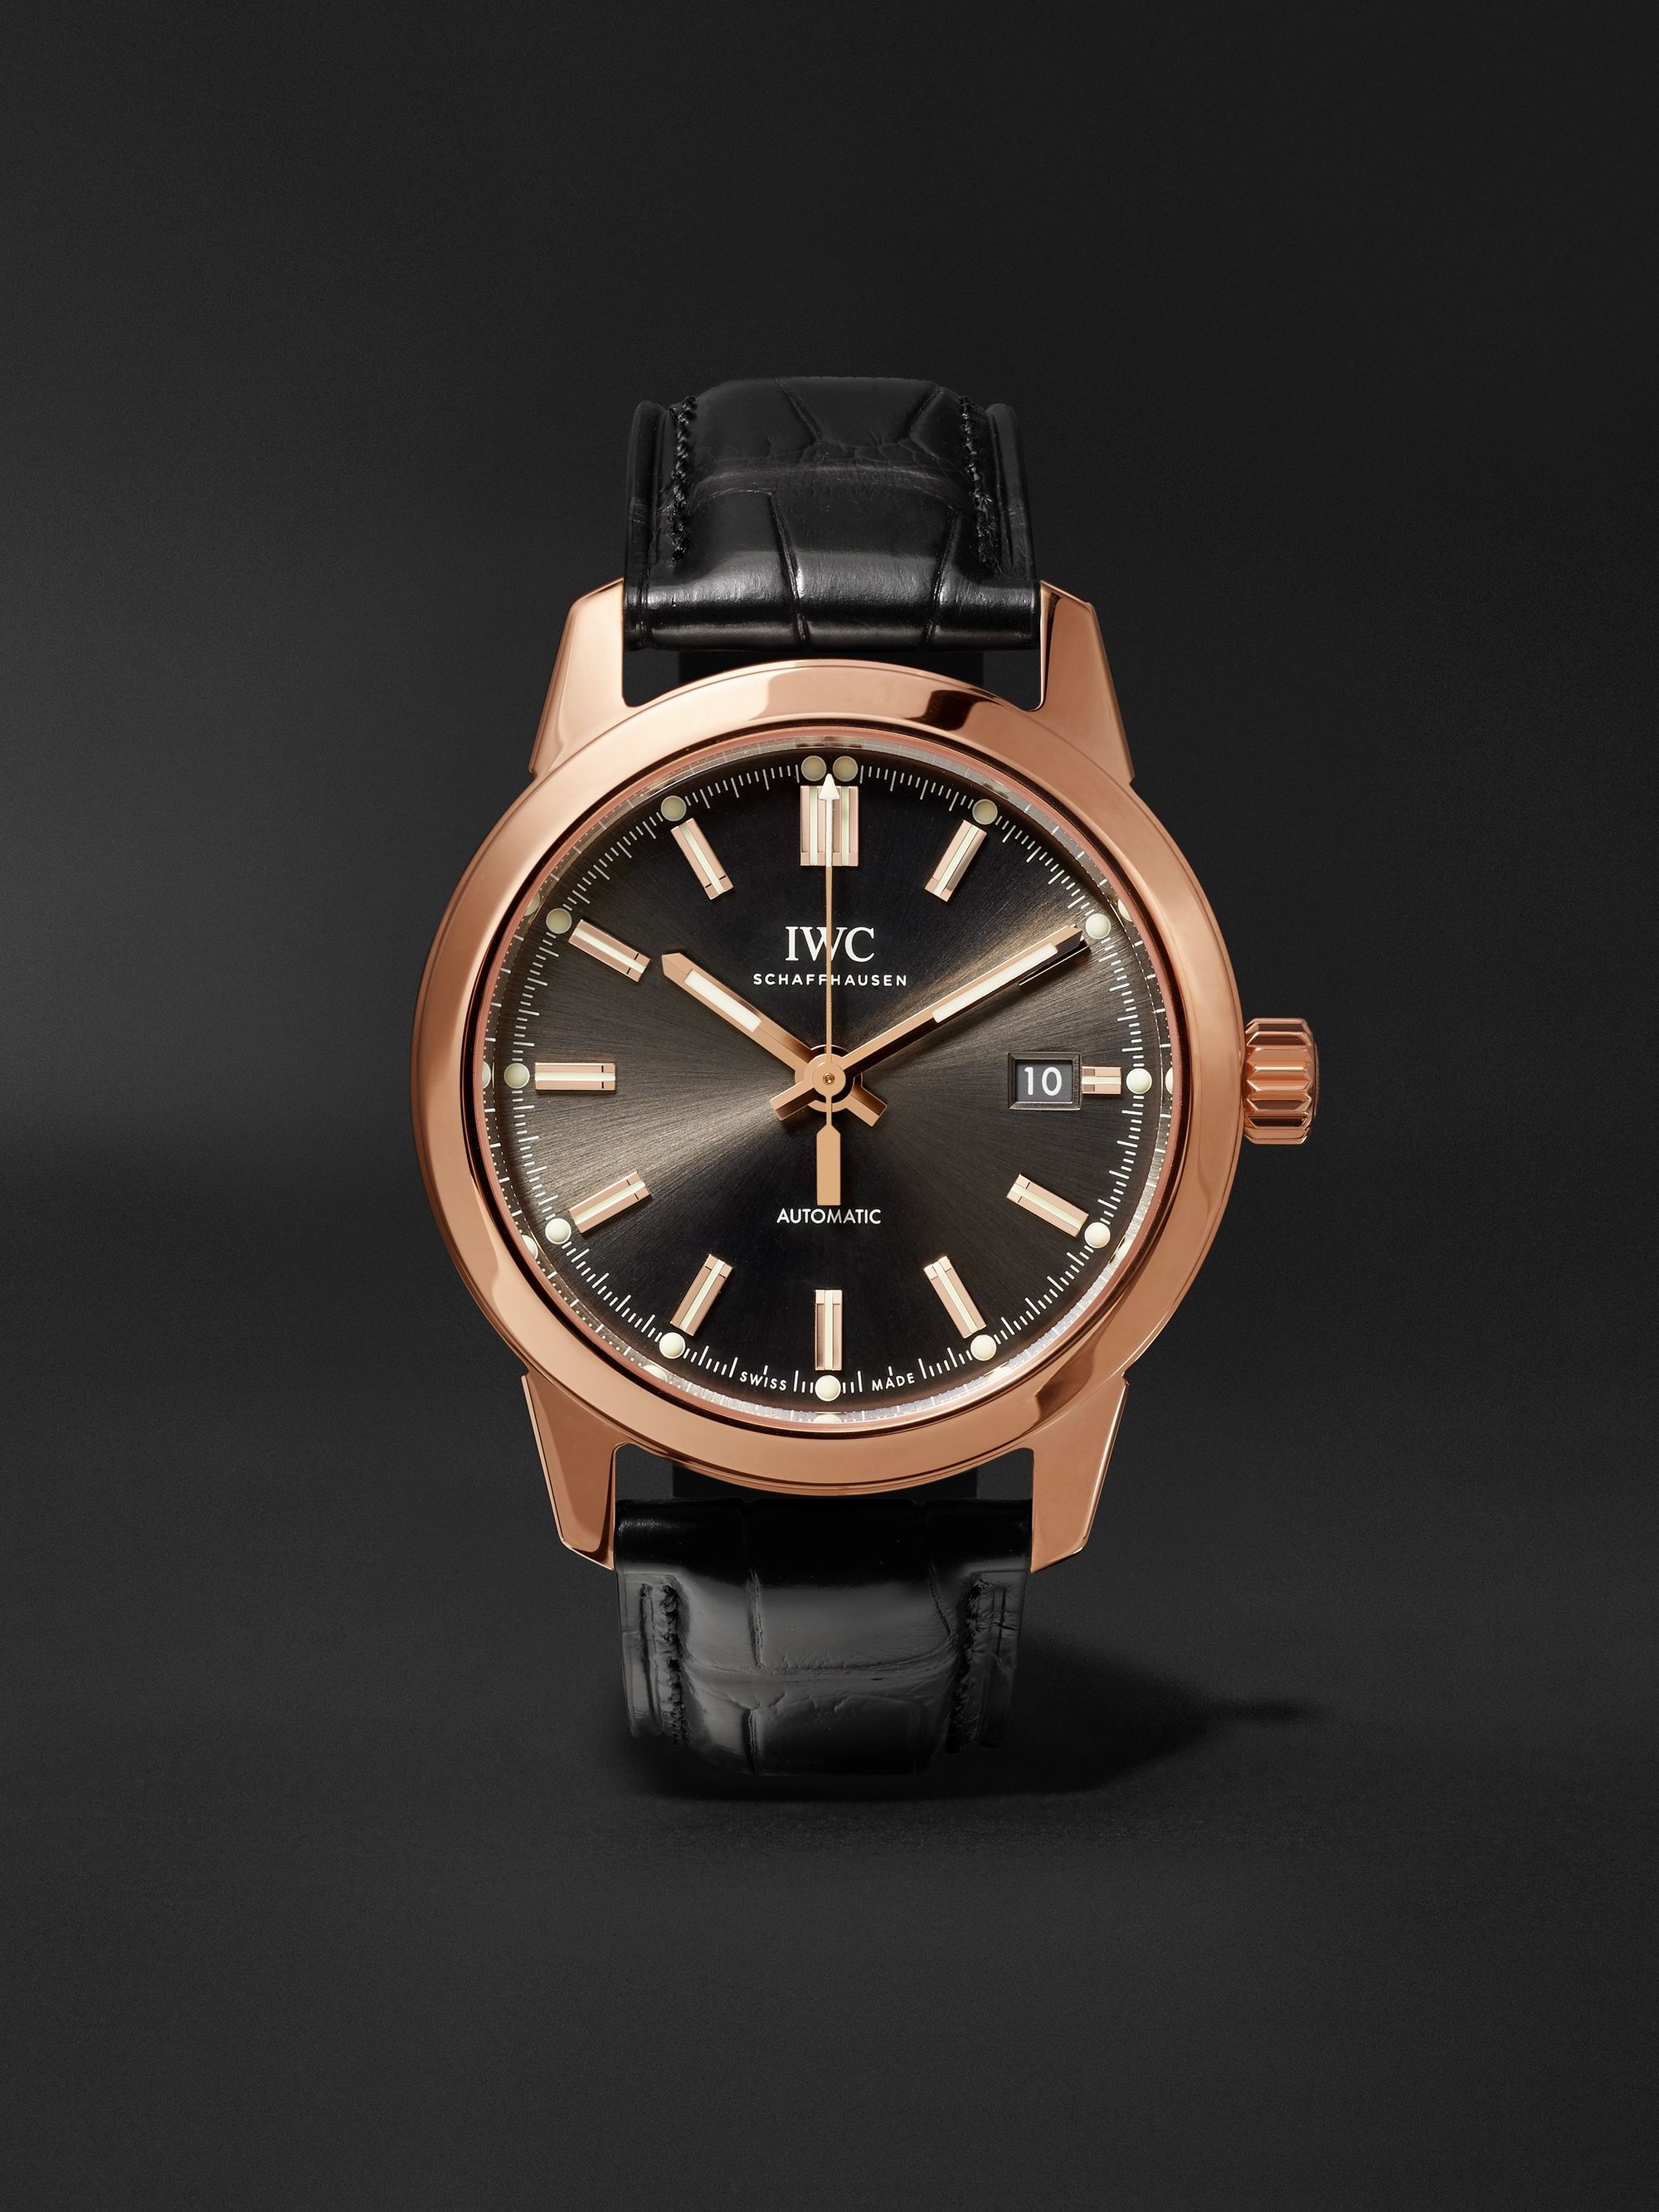 IWC SCHAFFHAUSEN Ingenieur Automatic 40mm Red Gold and Alligator Watch, Ref. No. IW357003consbdiscoNET60